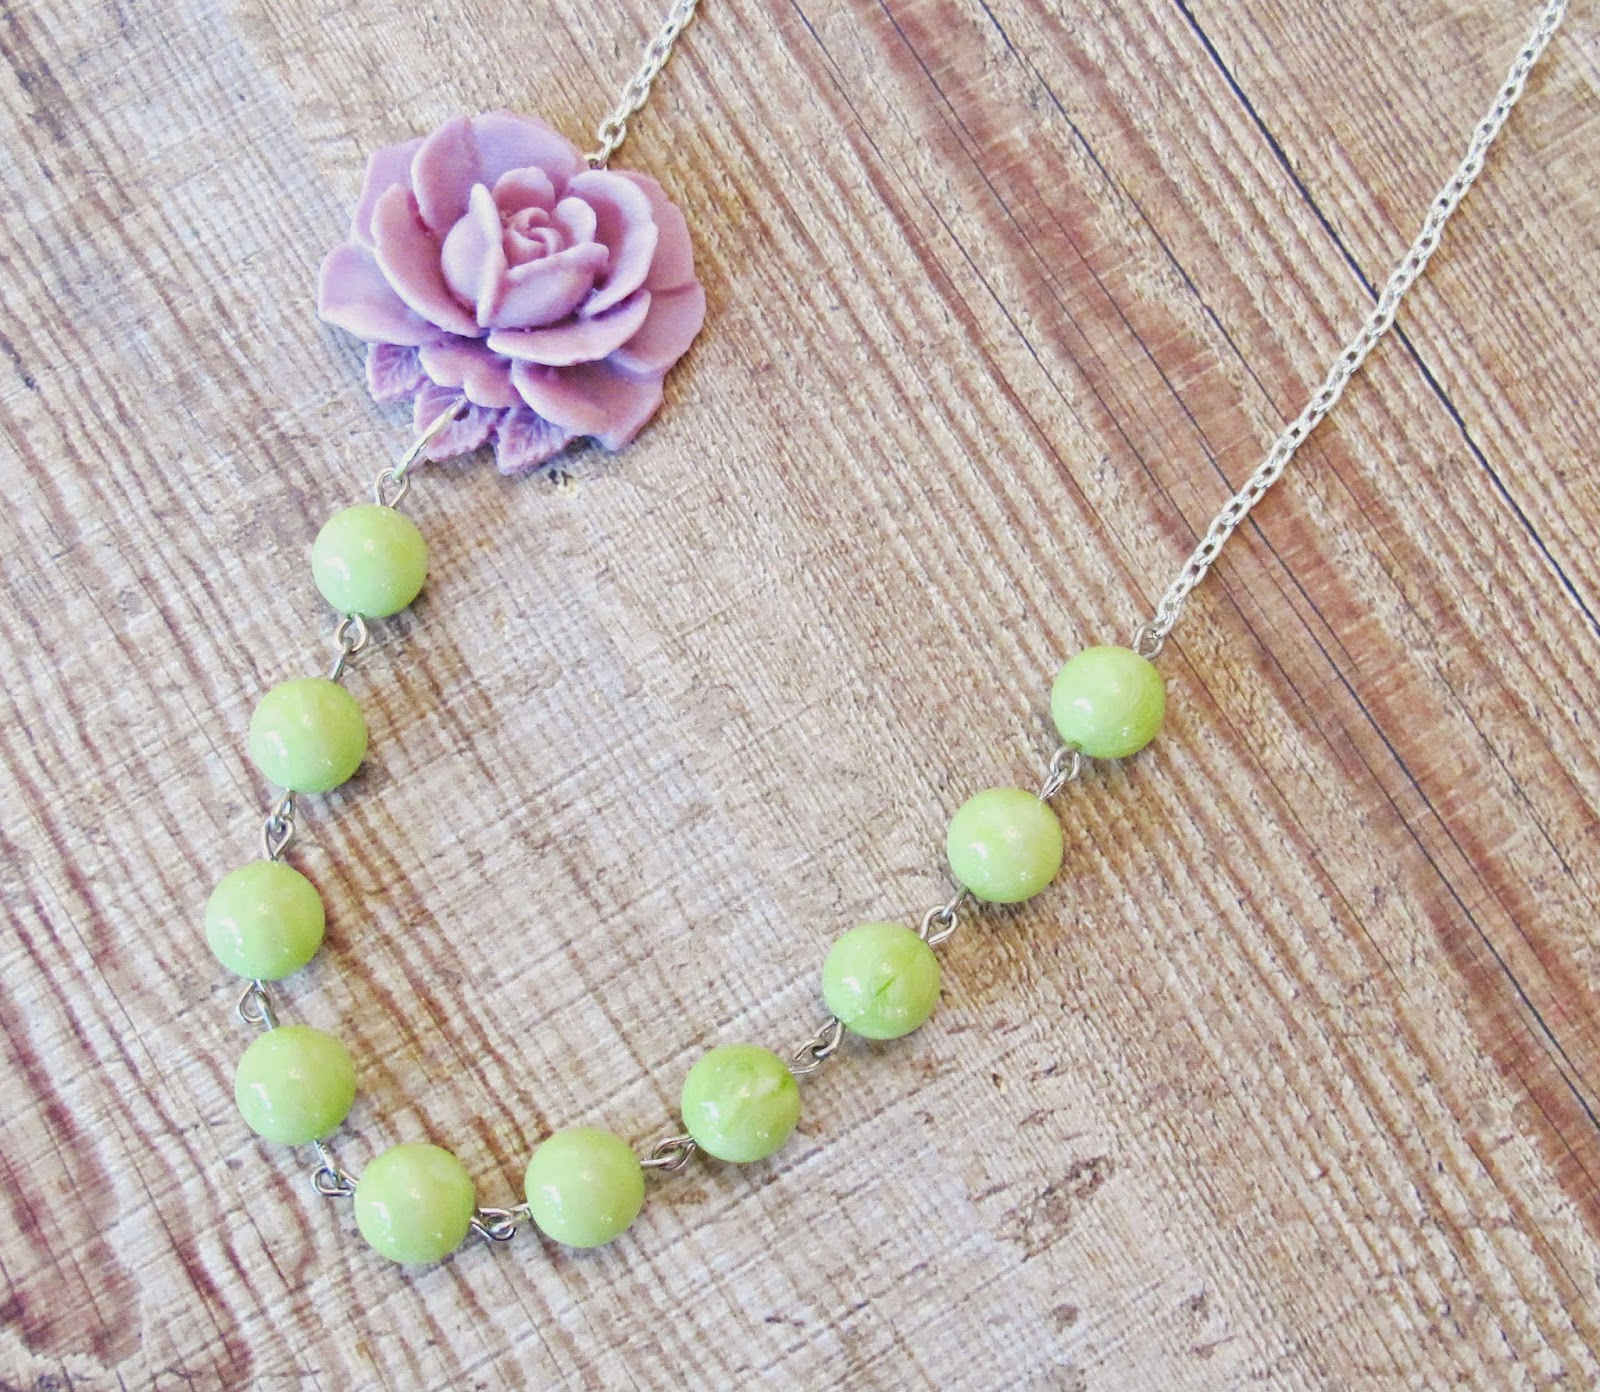 image hollin asymmetrical necklace two cheeky monkeys avocado green lilac purple mauve rose flower vintage beads lucite